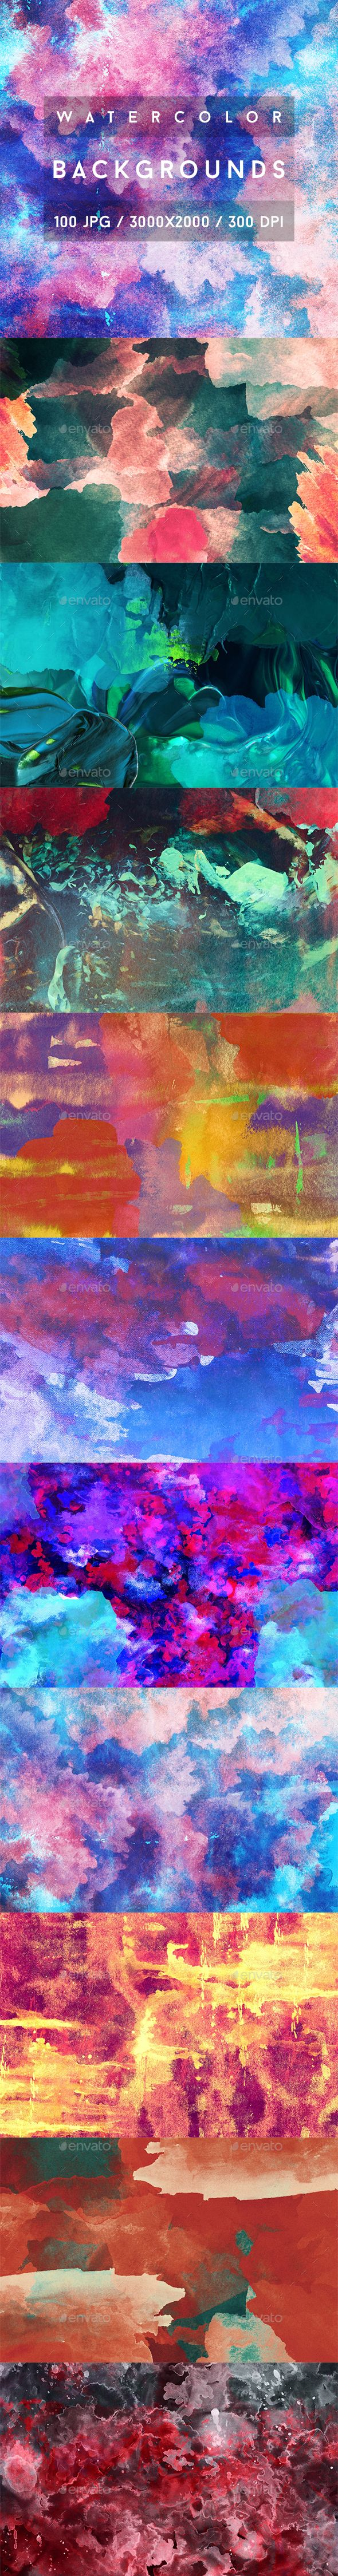 100 Watercolor Backgrounds - Abstract #Backgrounds Download here: https://graphicriver.net/item/100-watercolor-backgrounds/19584727?ref=alena994